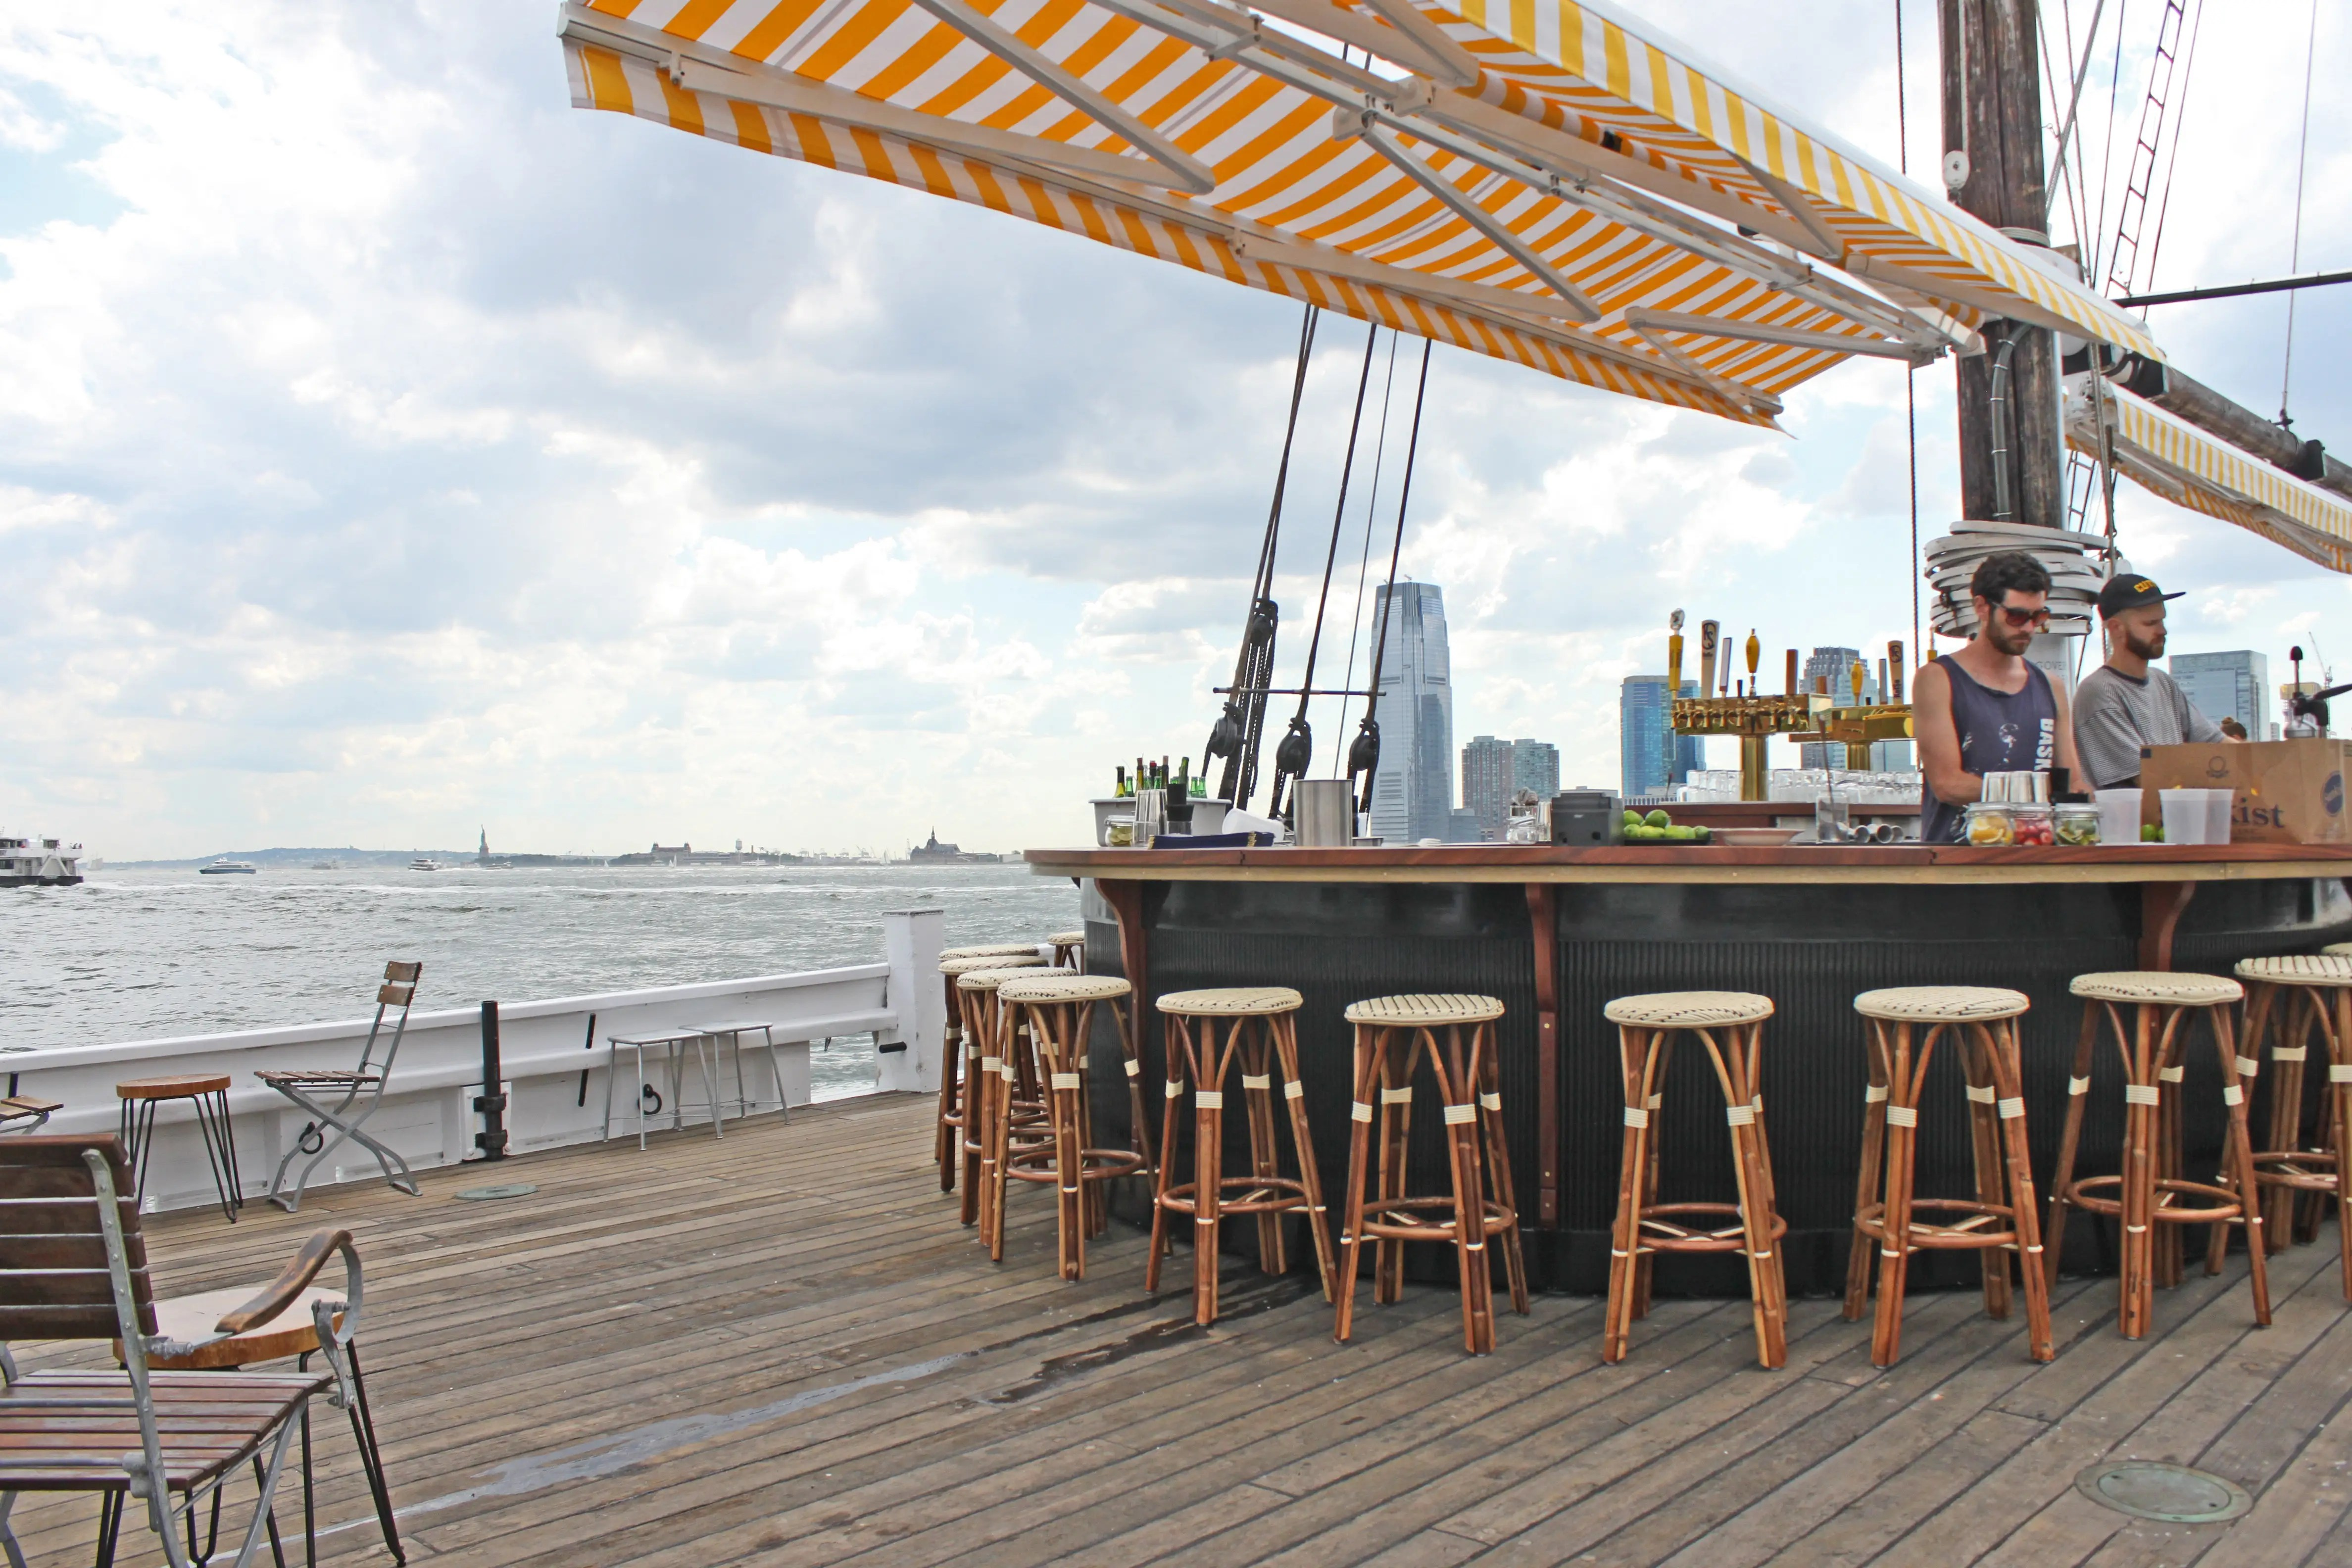 There is a full-service bar, which offers nautical themed cocktails, as well as beers from Red Hook's Other Half Brewery Company.